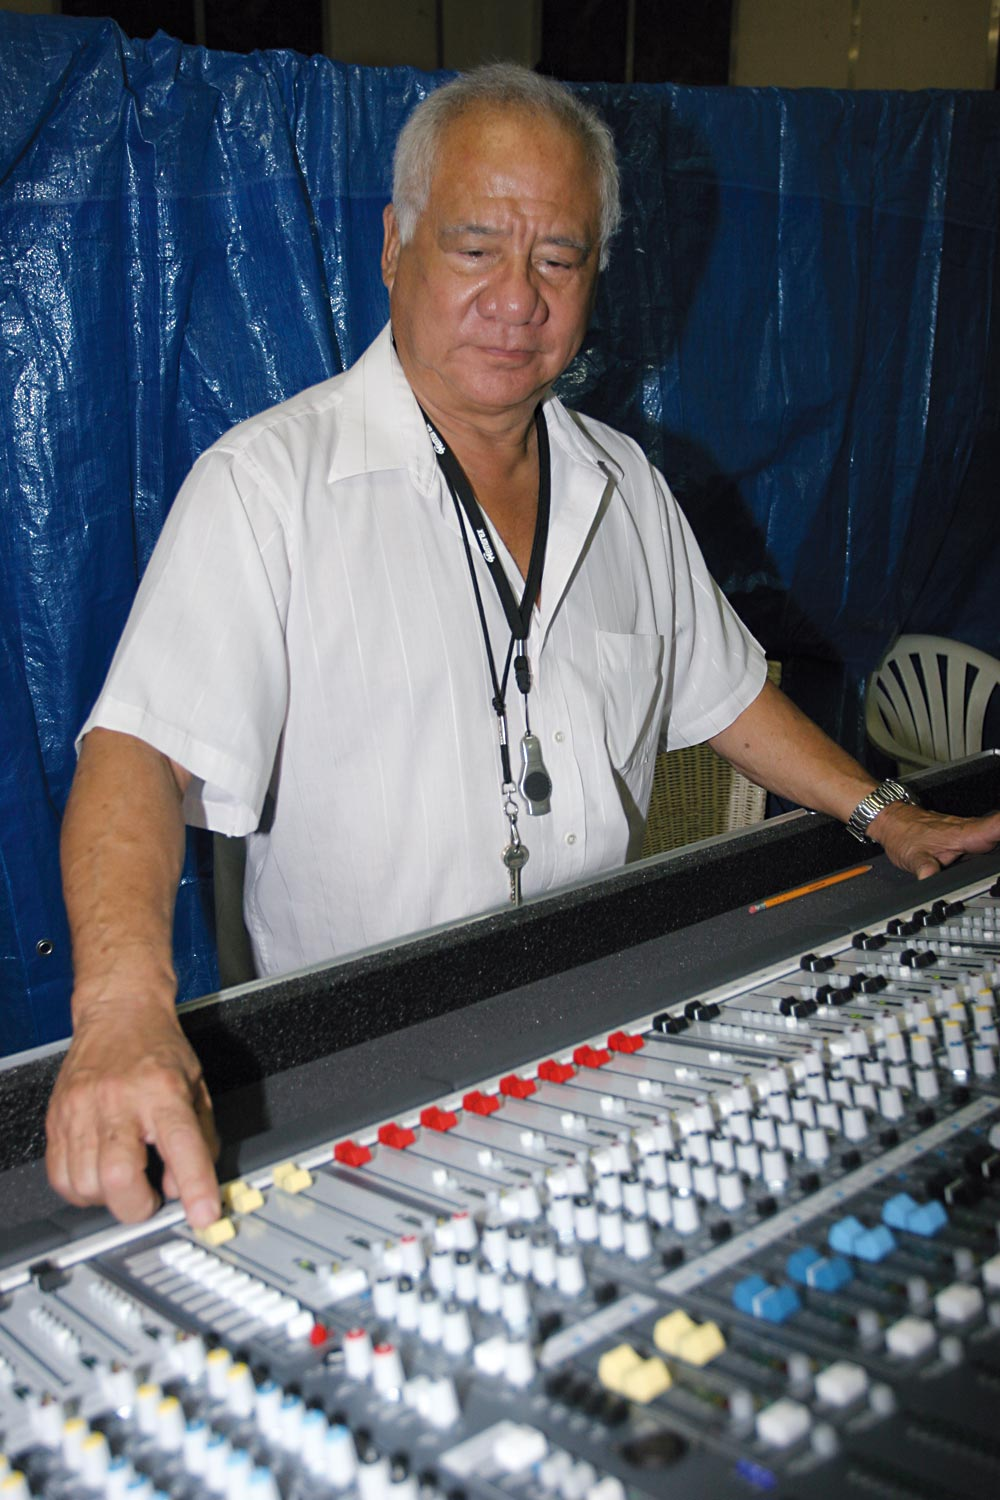 Byron Lee tweaking his mobile mixing console at a rehearsal at his Dynamics Sound Recording studio home in Kingston, Jamaica. Photograph by Roysweetland@gmail.com